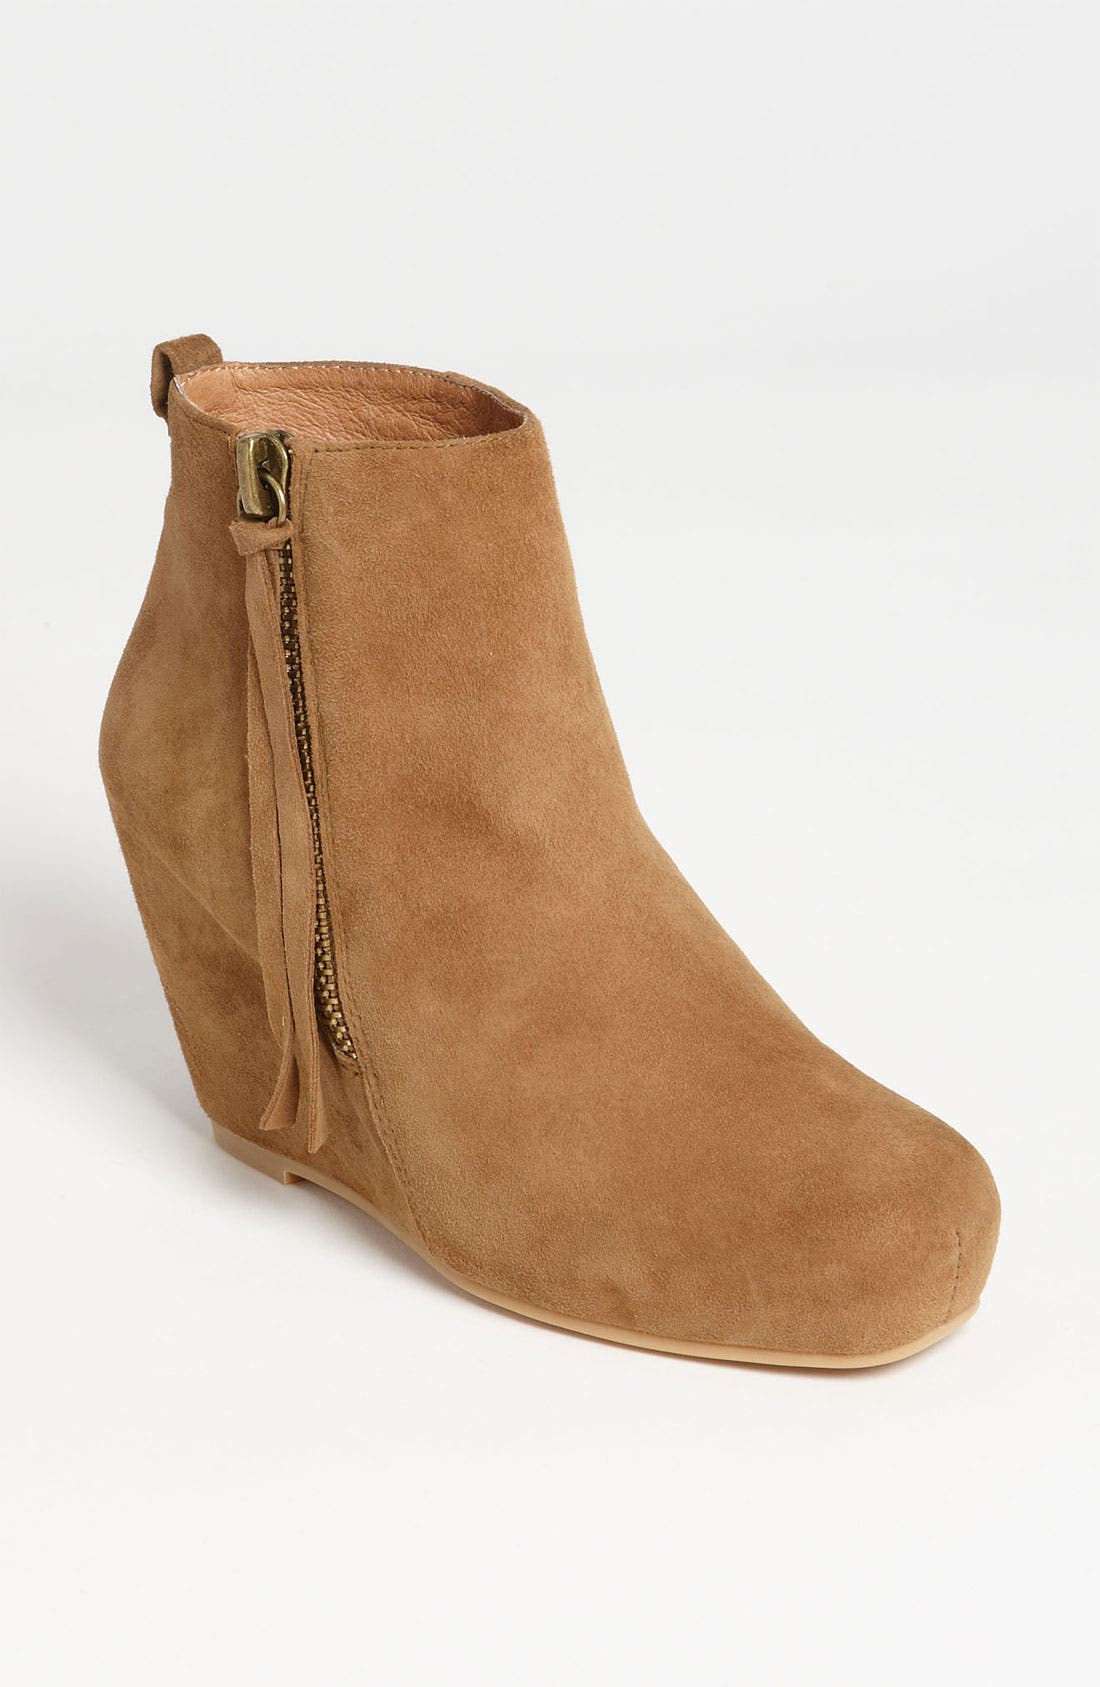 Alternate Image 1 Selected - Jeffrey Campbell 'Newton' Wedge Bootie